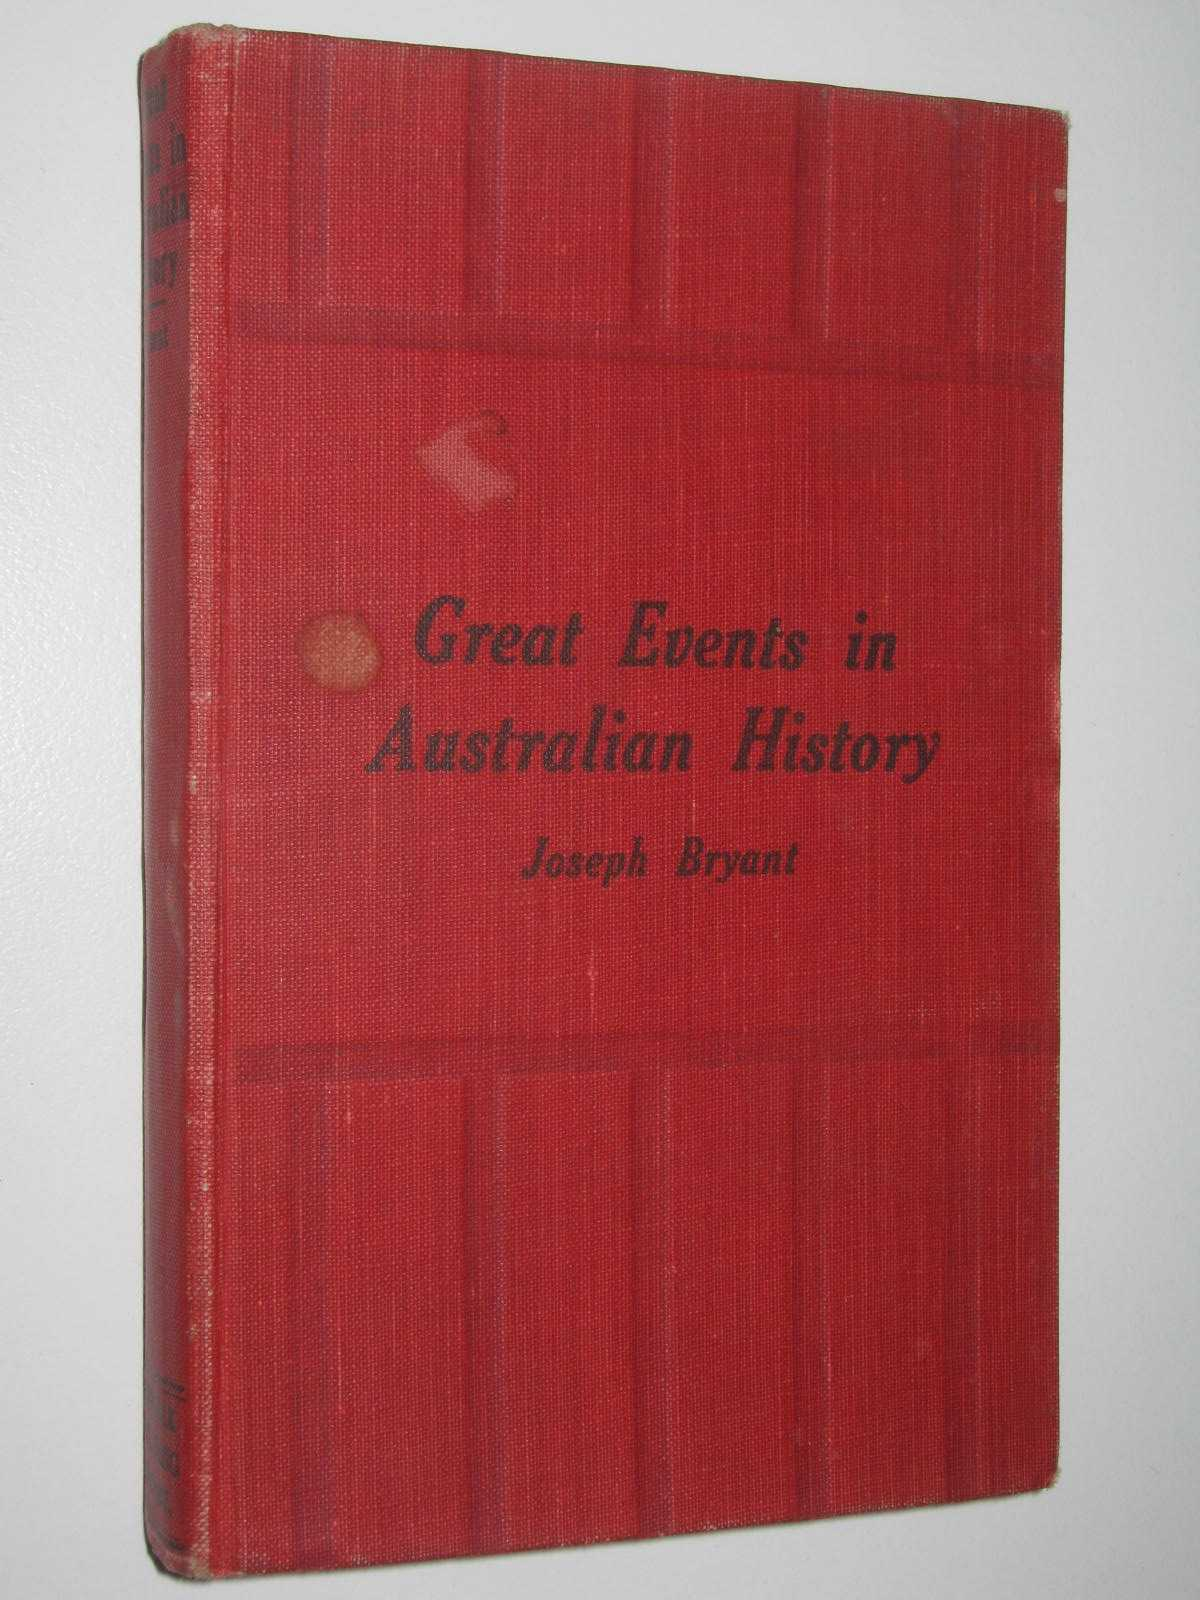 Image for Great Events in Australian History